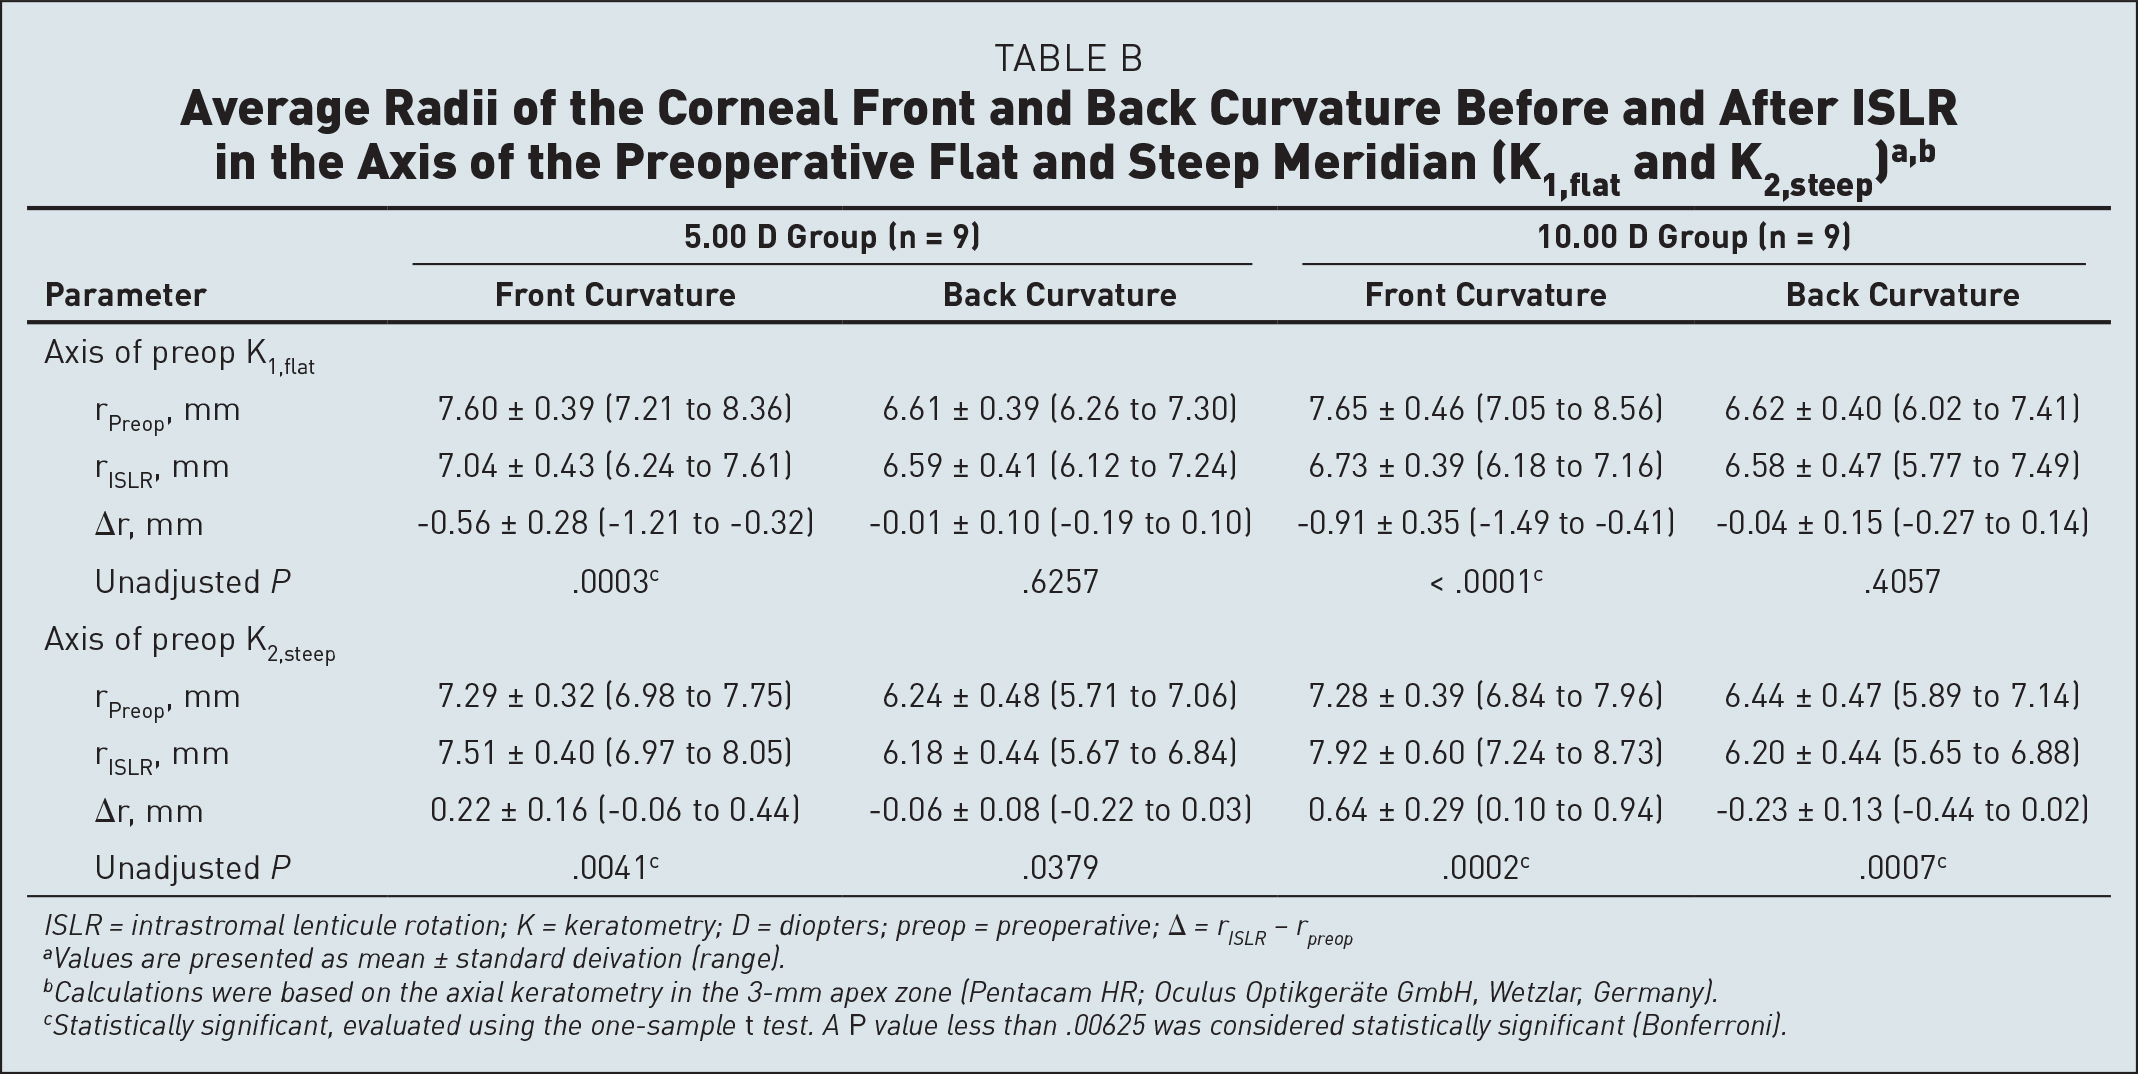 Average Radii of the Corneal Front and Back Curvature Before and After ISLR in the Axis of the Preoperative Flat and Steep Meridian (K1,flat and K2,steep)a,b